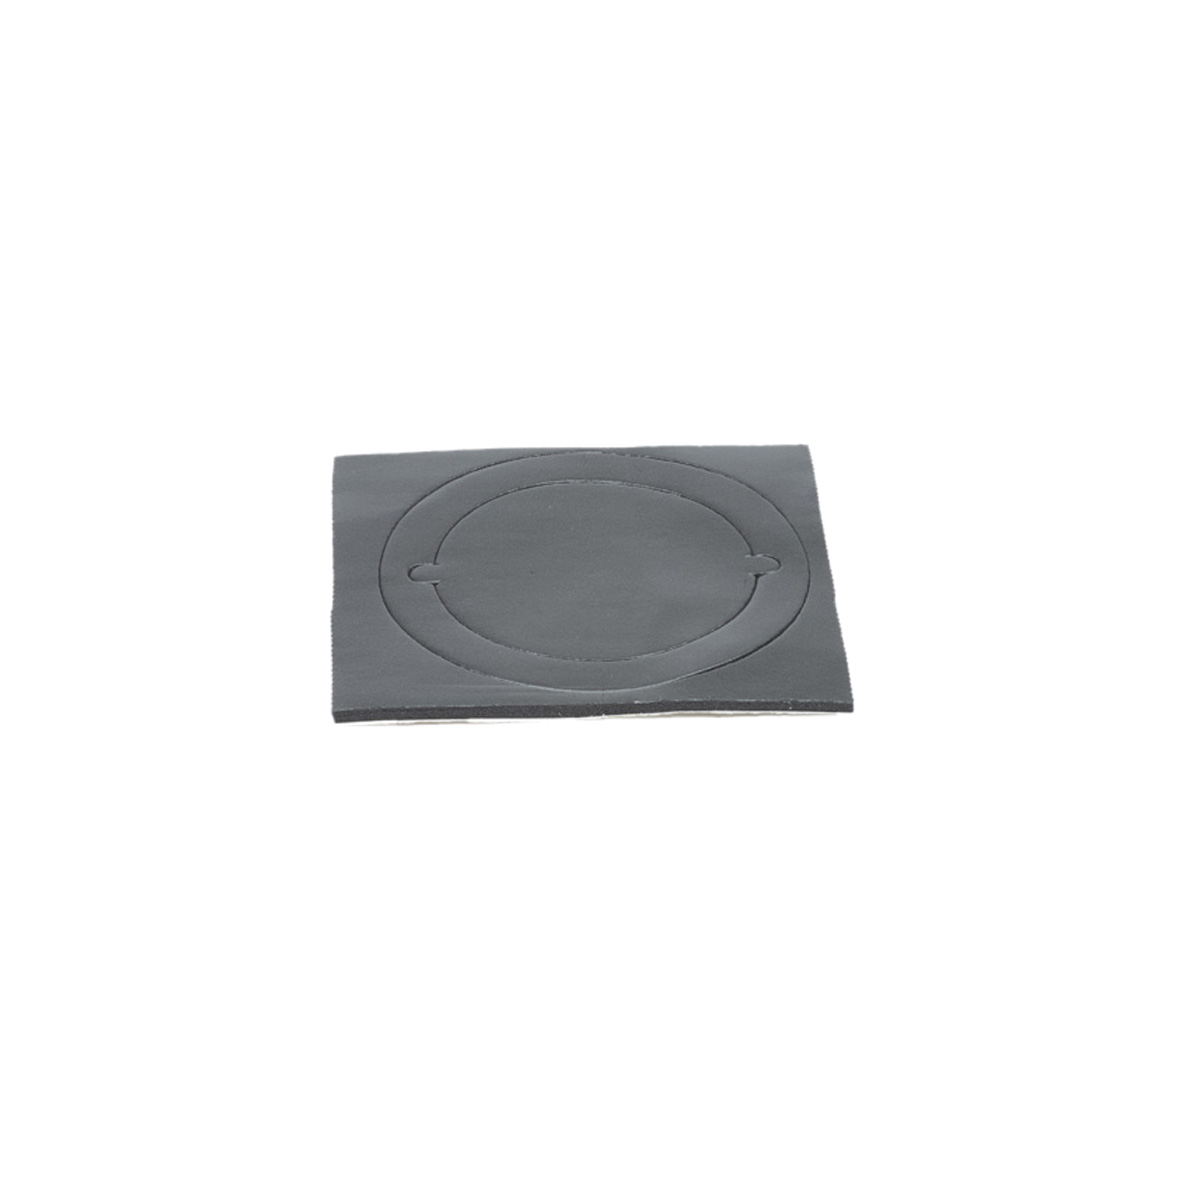 "Round Supply Outlet Gasket, 2.5"", 1pk"